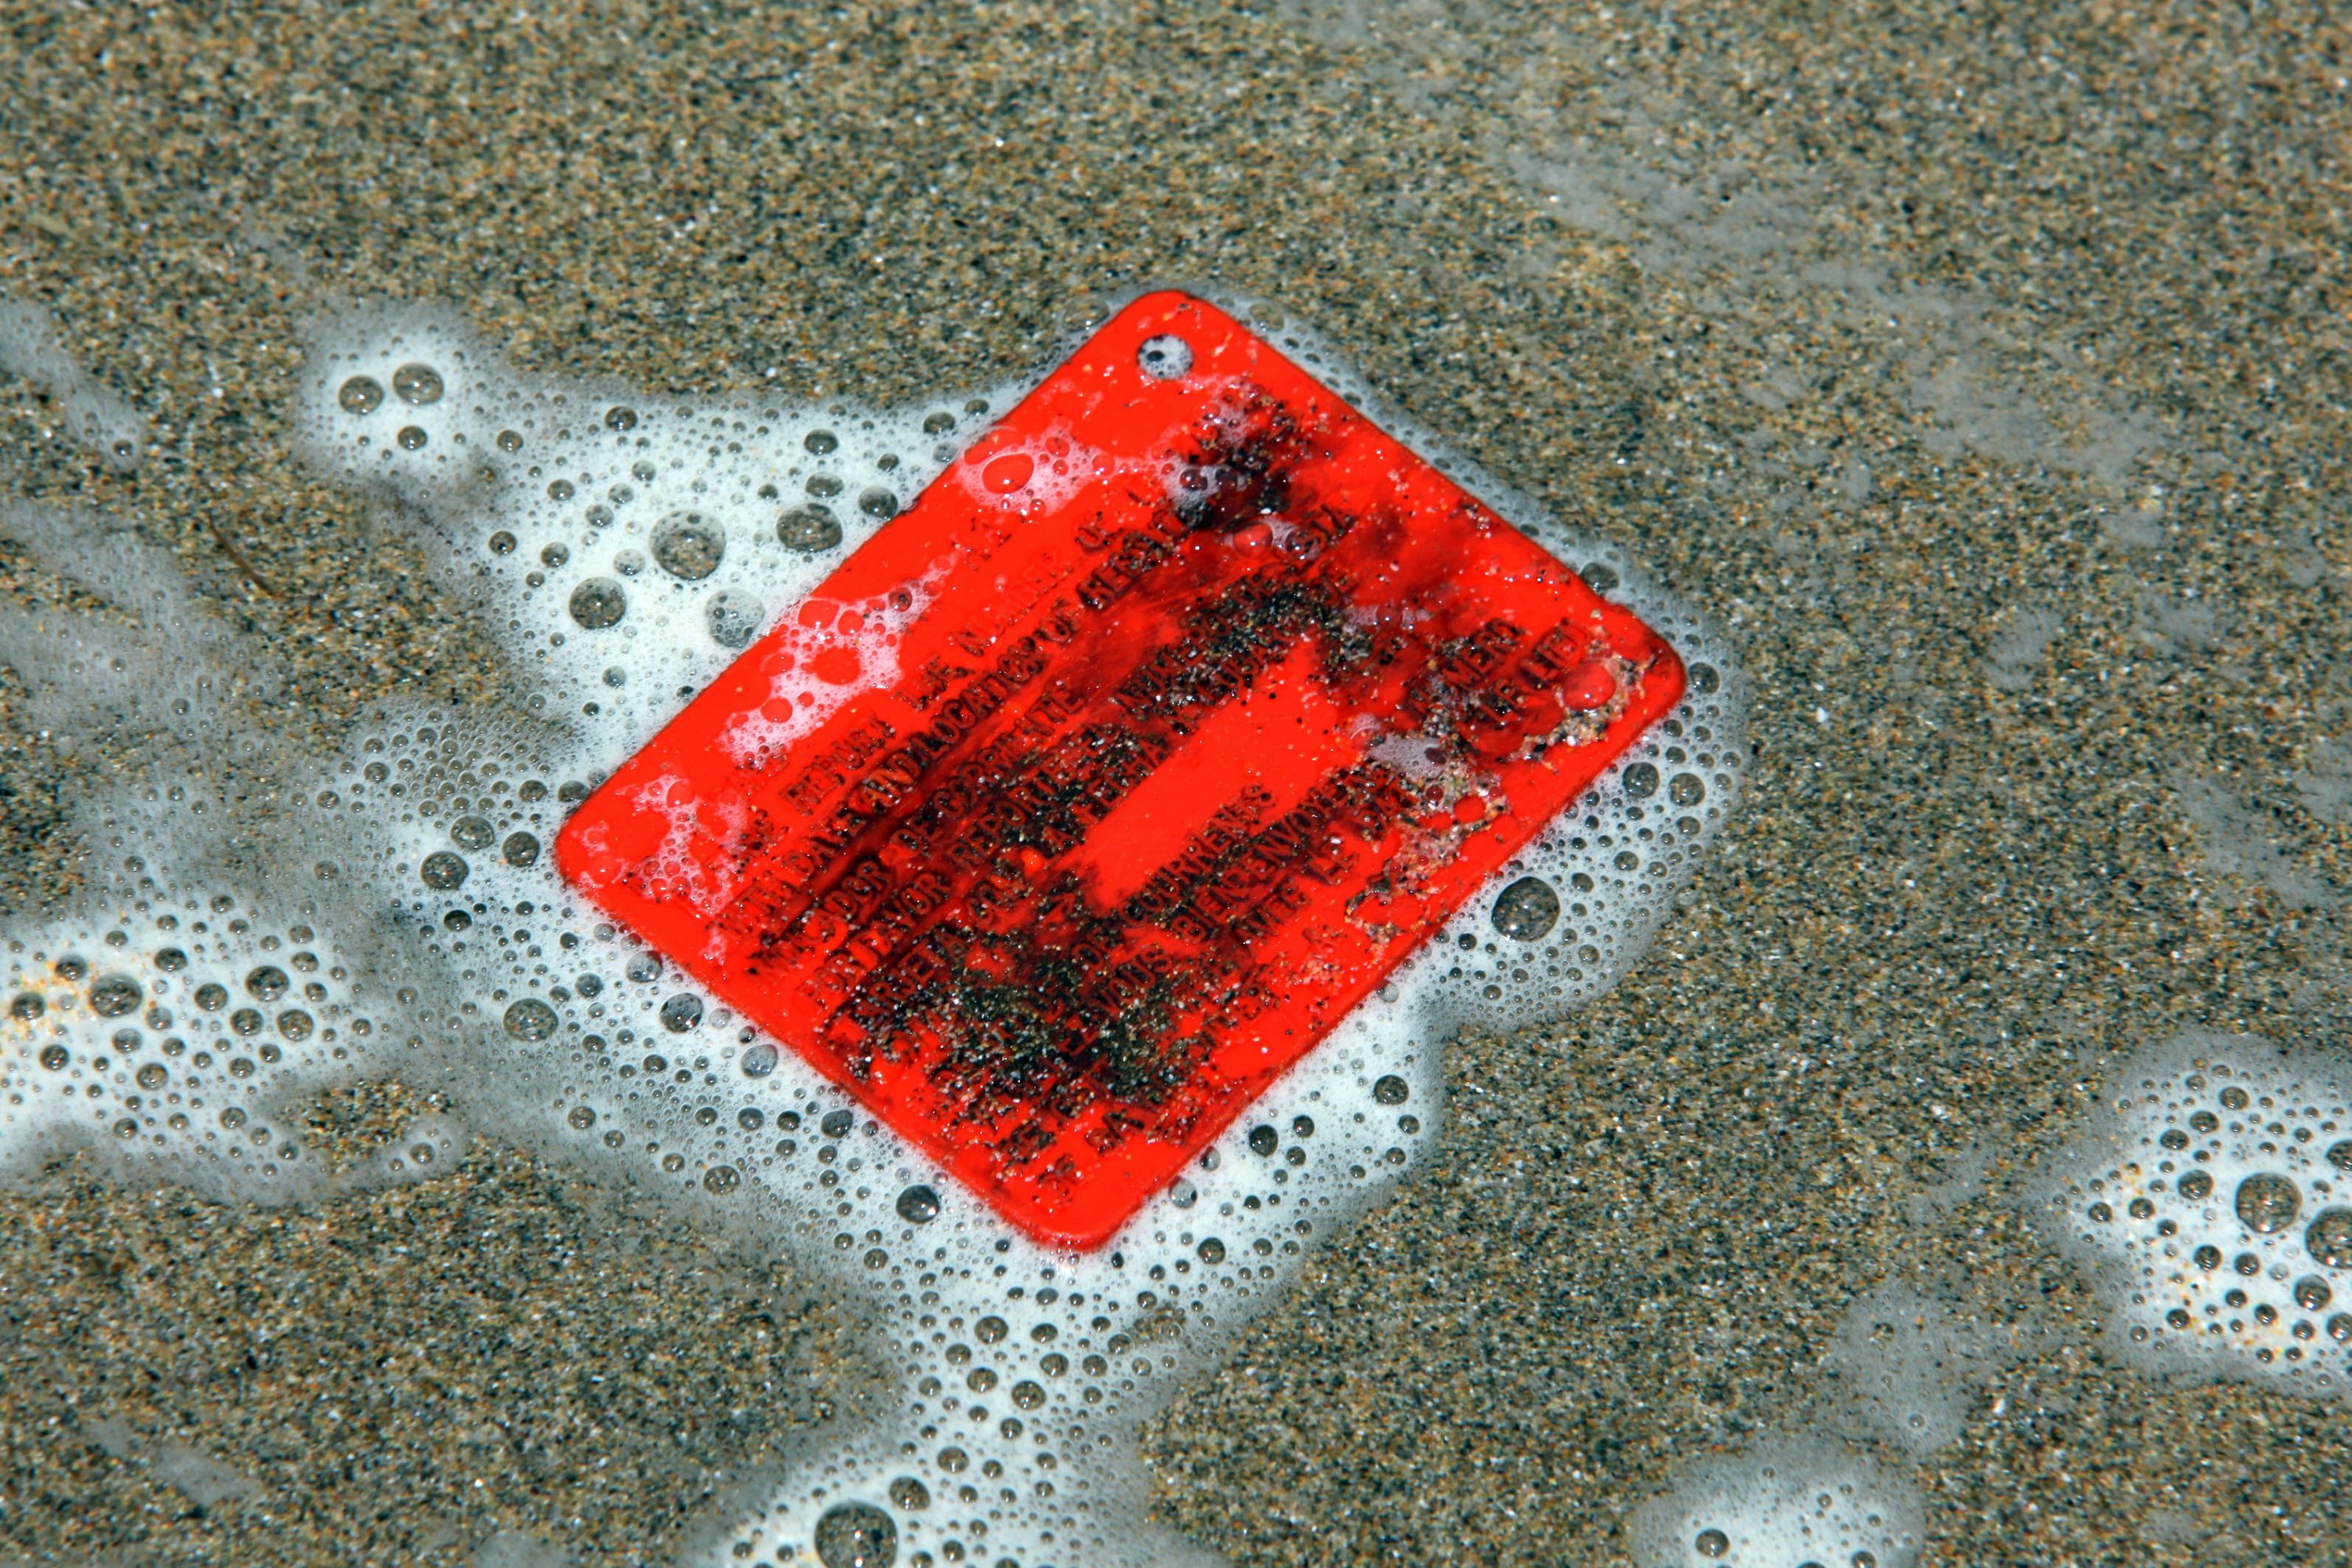 An orange plastic drift card lies in some foam on a beach.